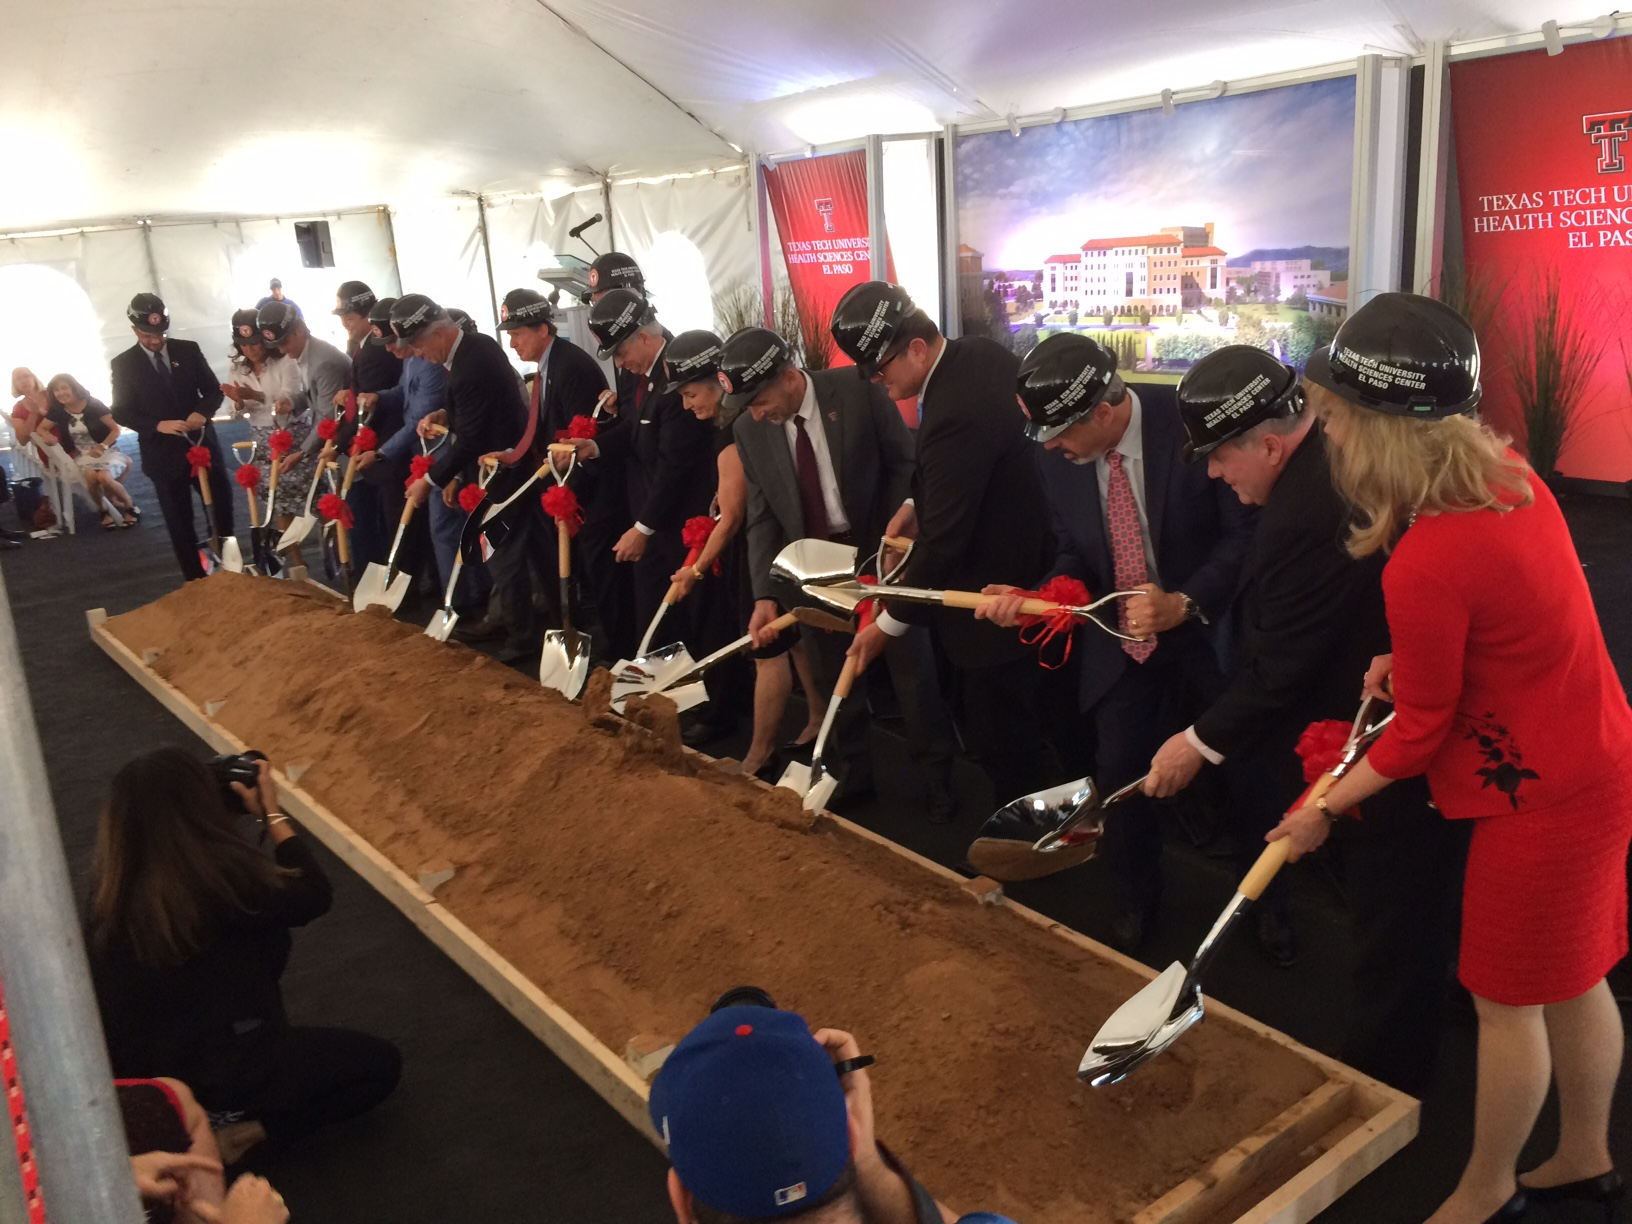 Texas Tech groundbreaking